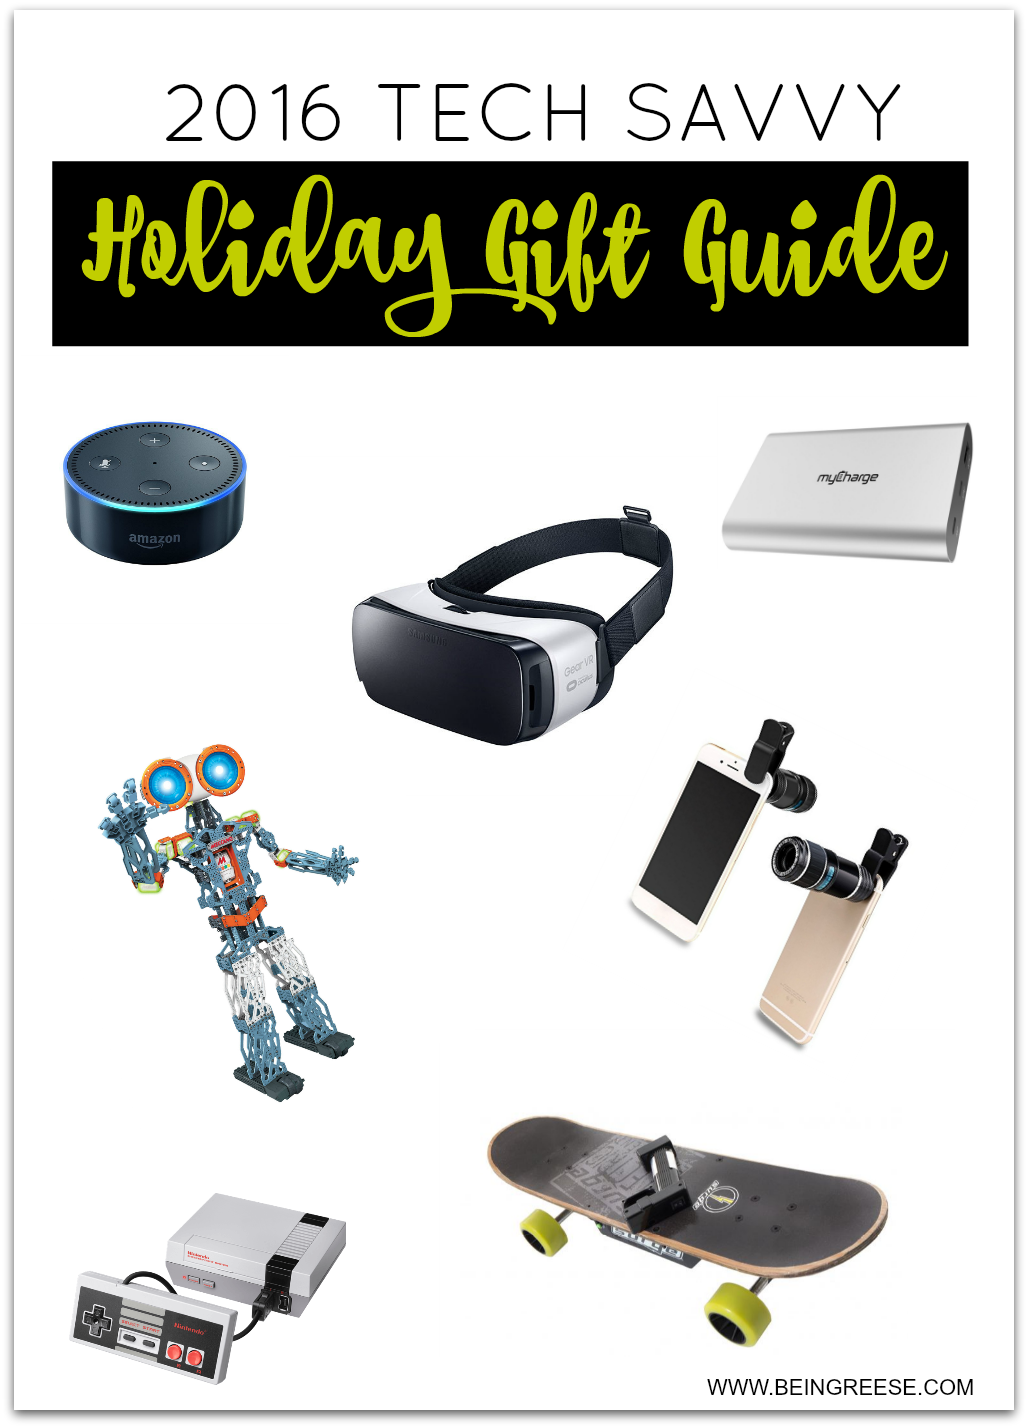 This gift guide was created with the tech savvy family in mind. Check out these tech gift ideas for everyone in the family.